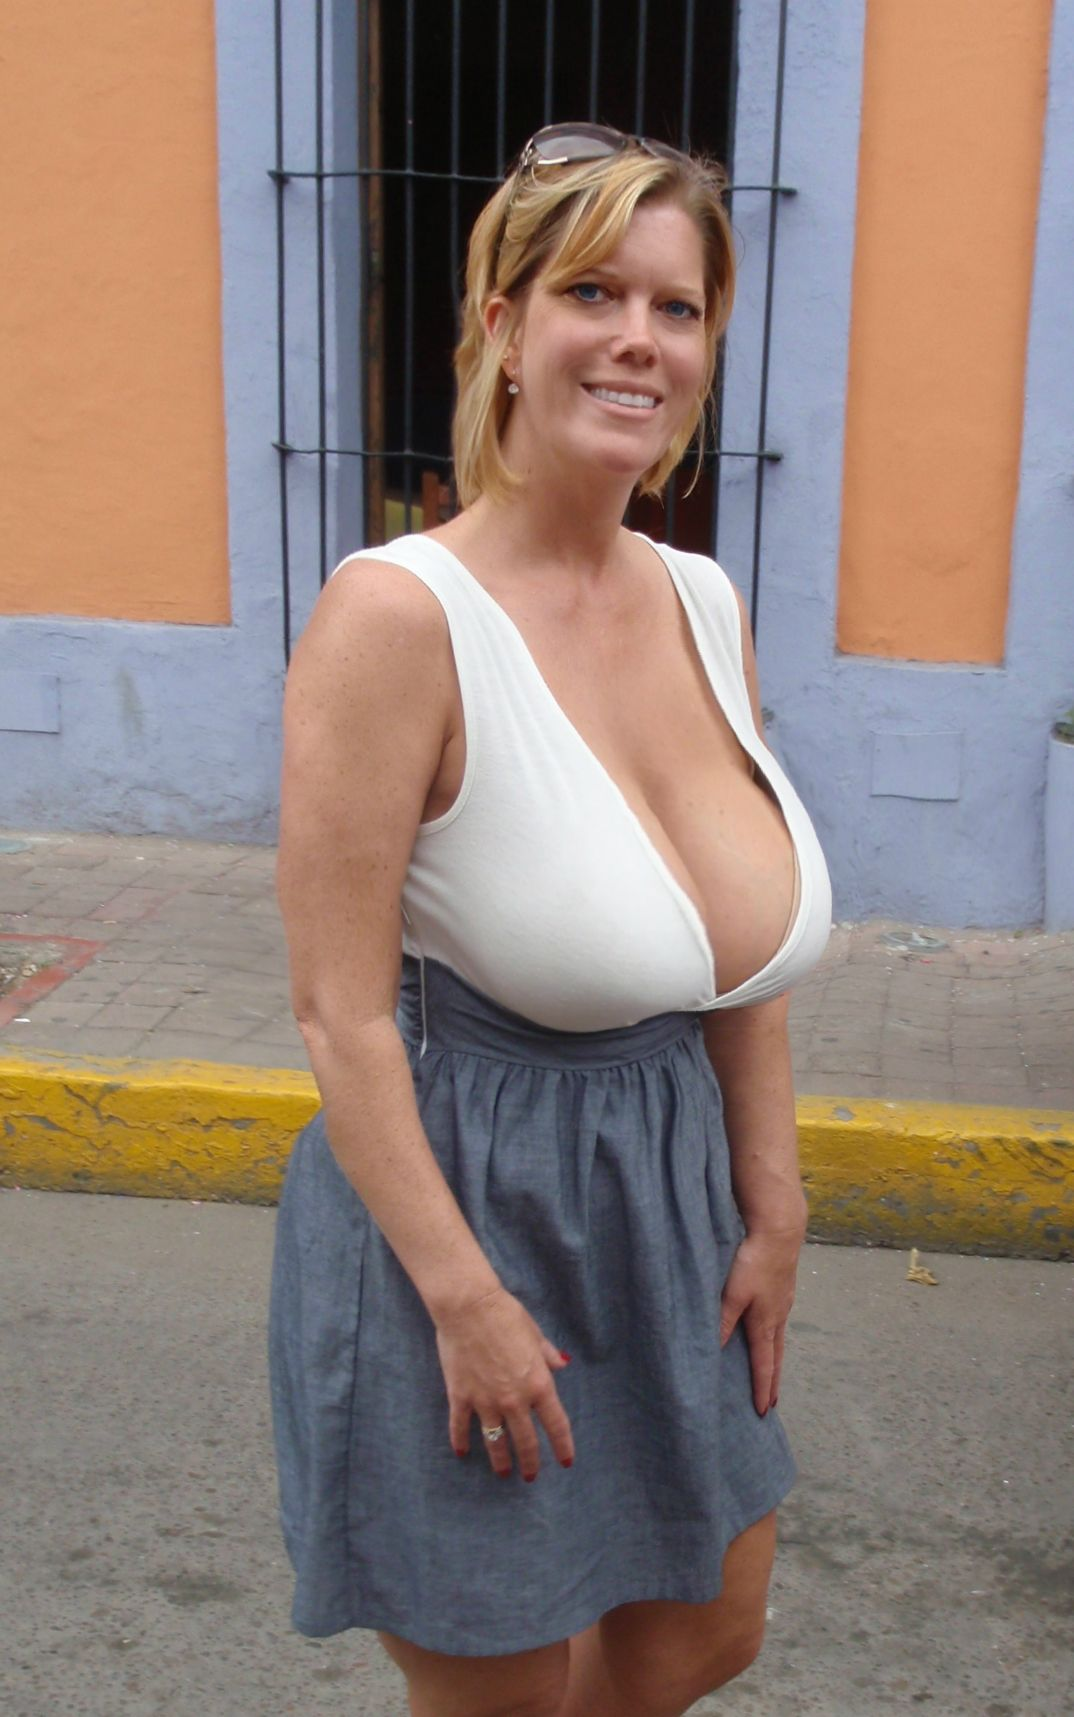 tumblr sexy mature Hot older women